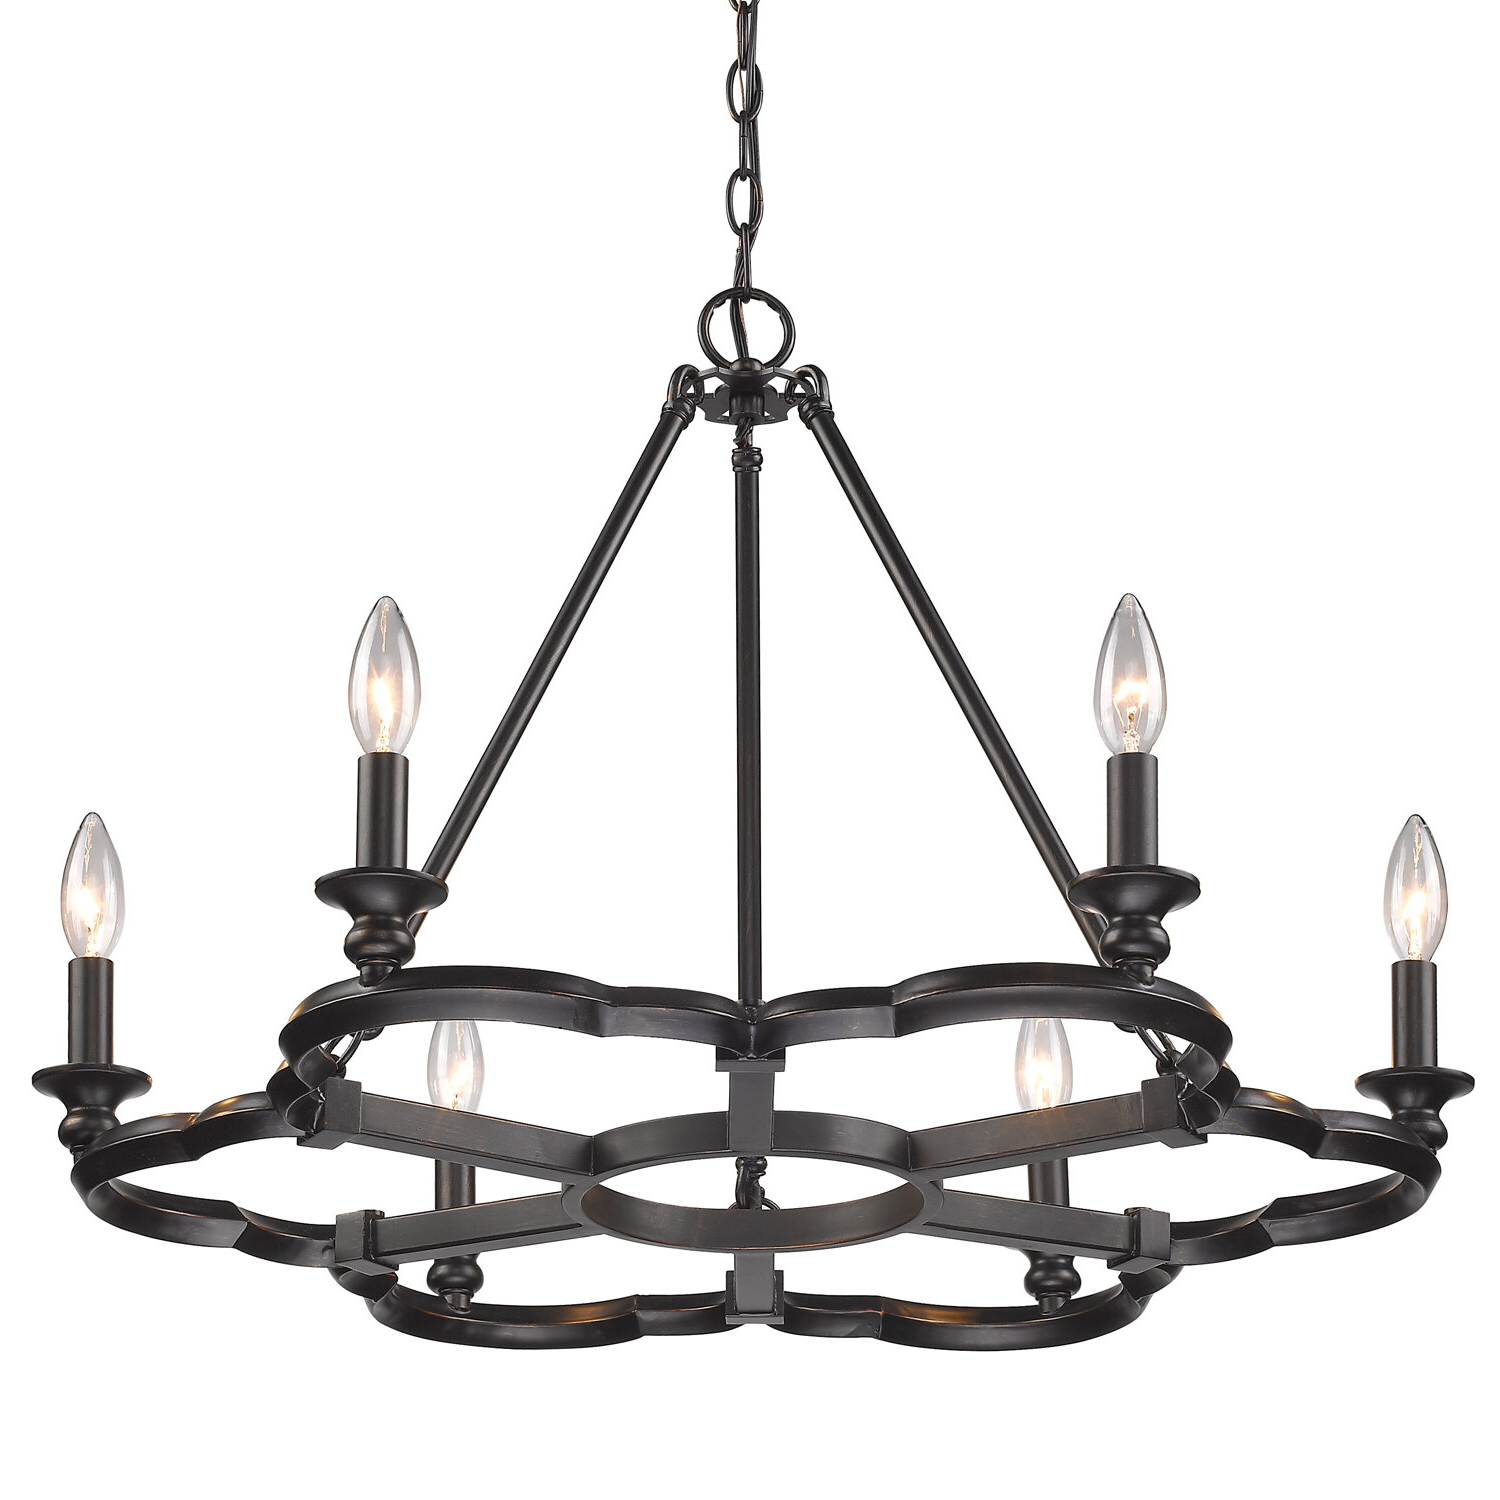 Popular Stephania 6 Light Candle Style Chandelier With Diaz 6 Light Candle Style Chandeliers (View 3 of 20)